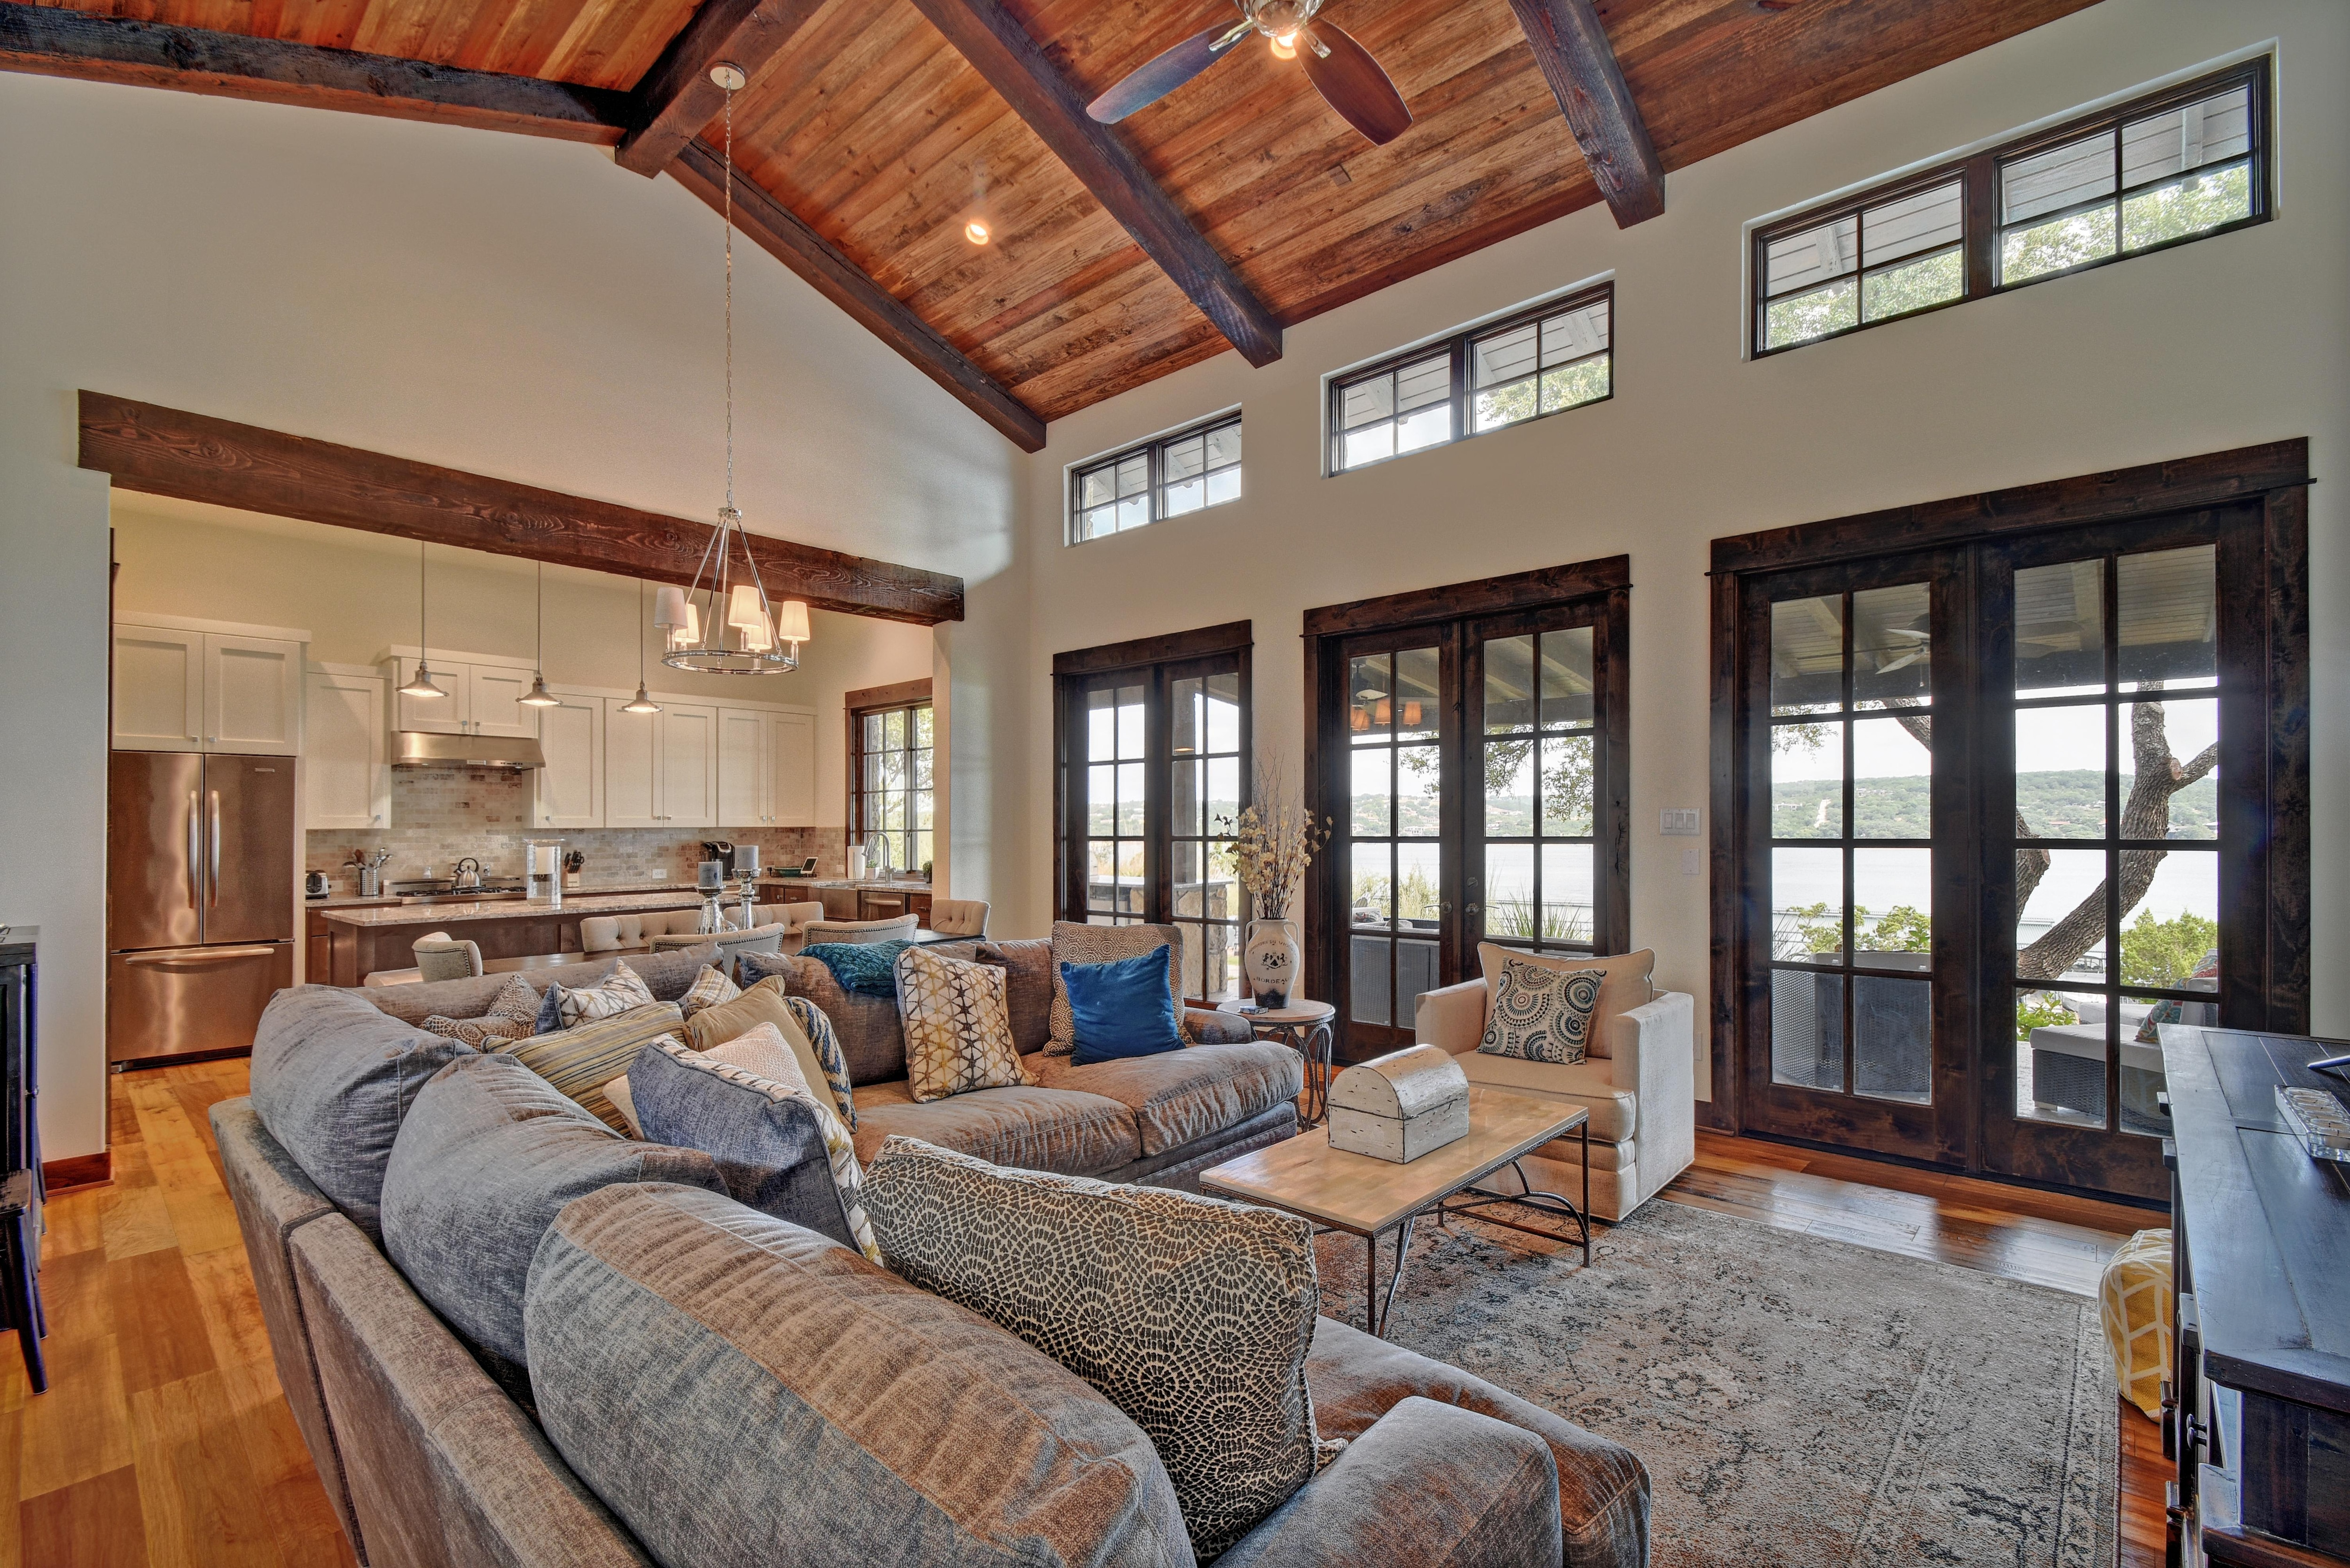 Large windows let in Lake Travis views.